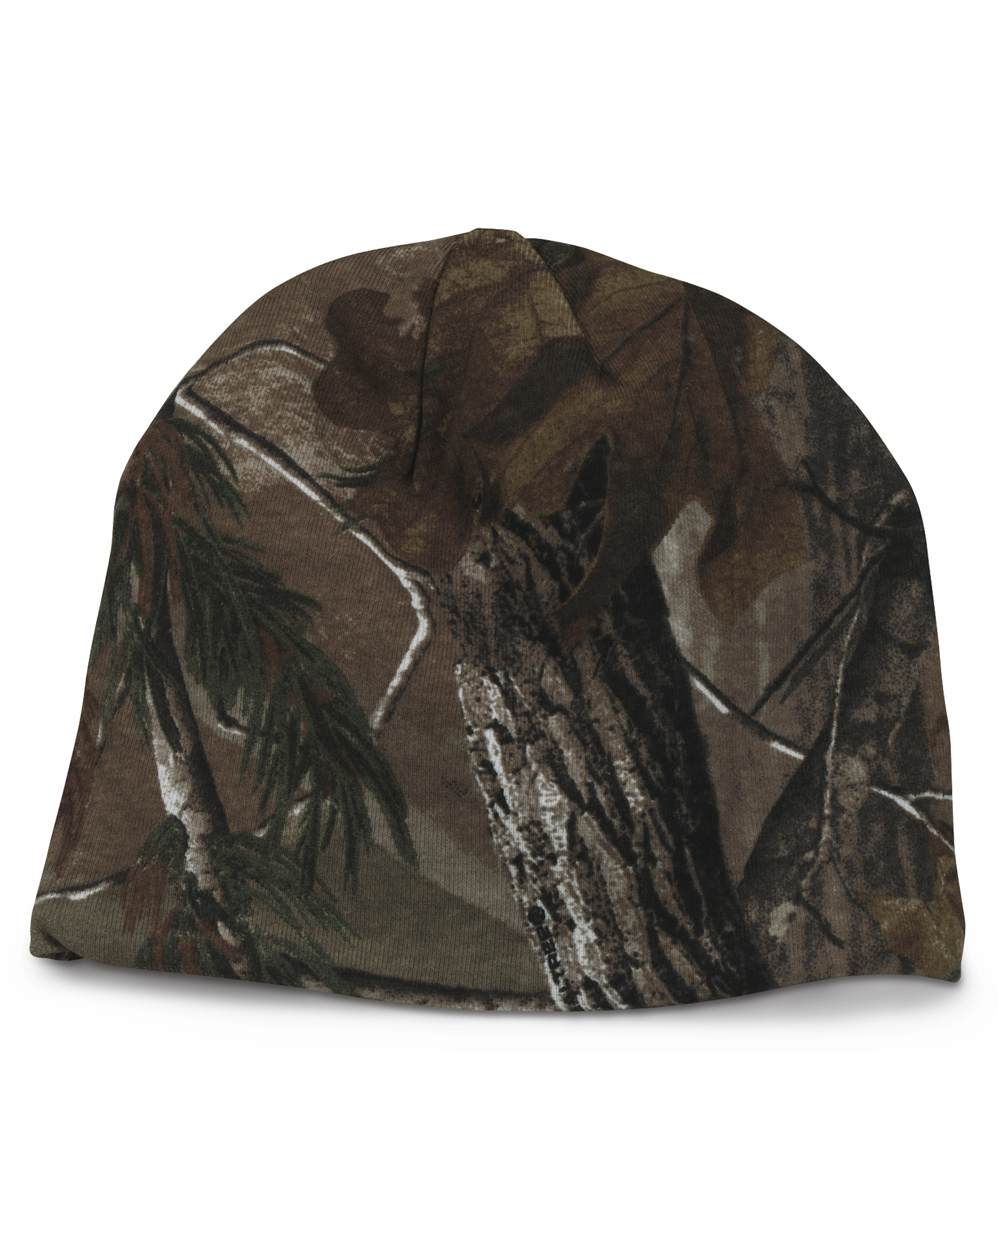 Outdoor Cap CMK405 Camo Knit Cap